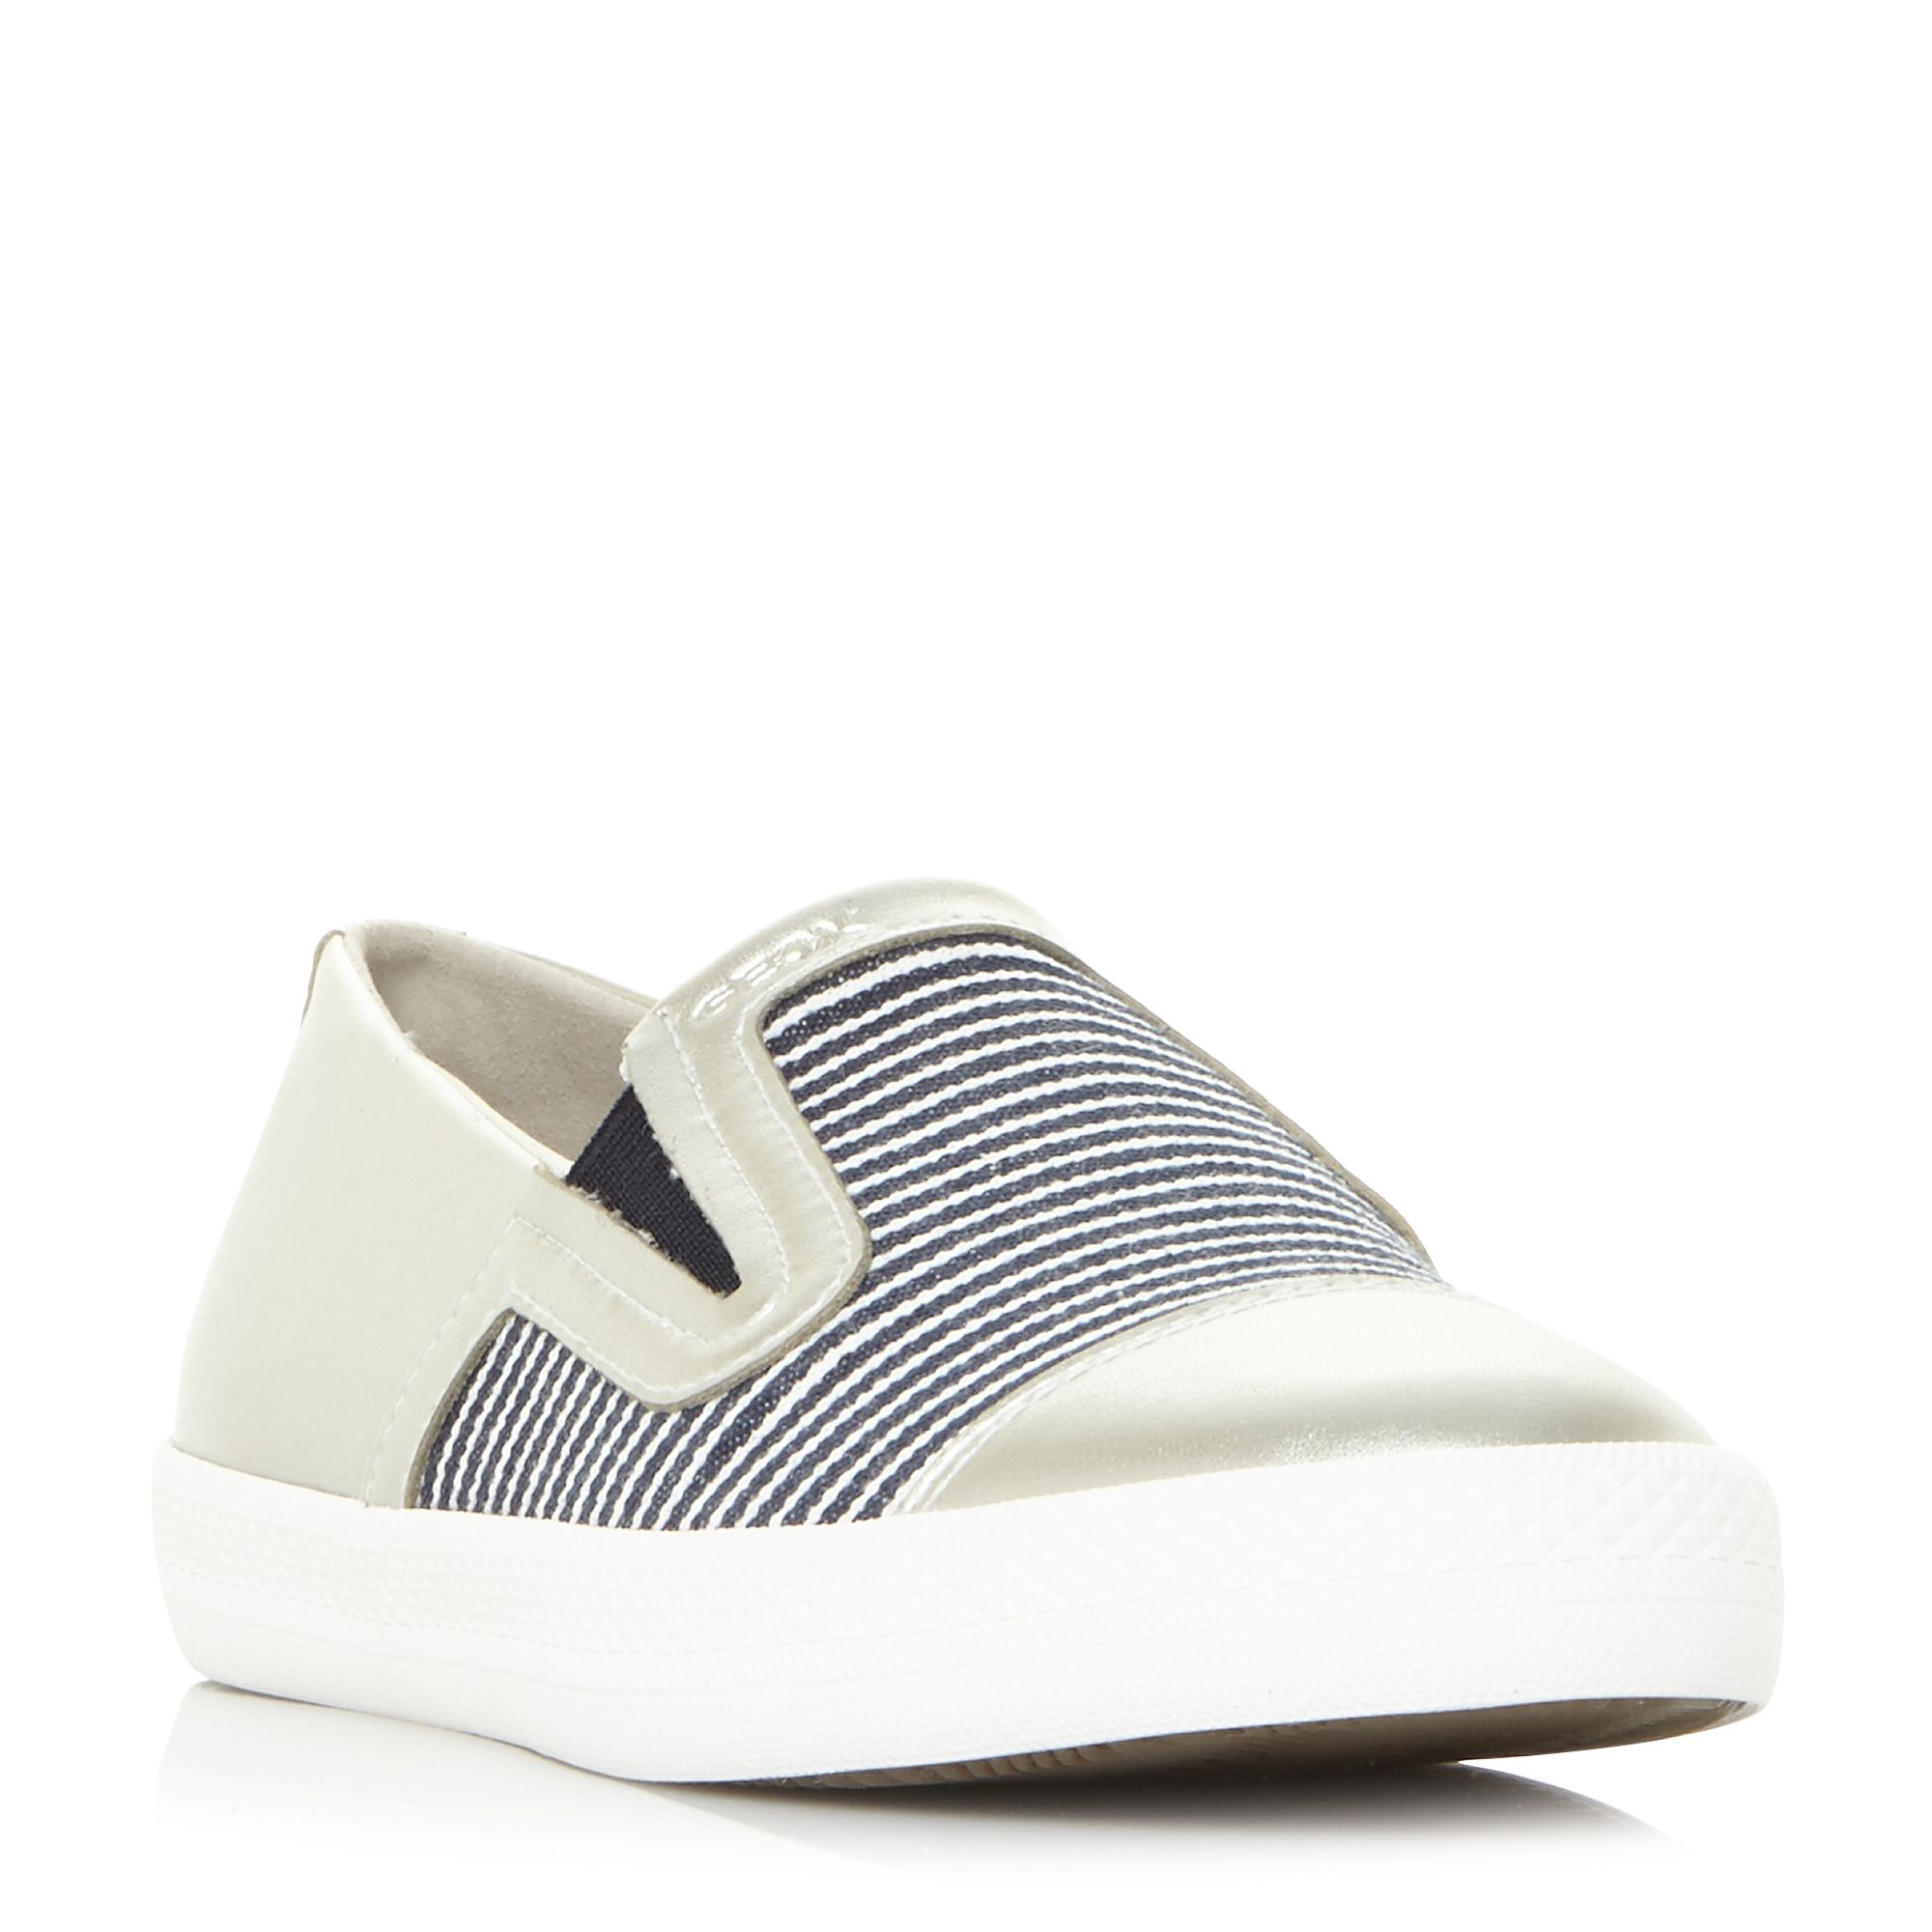 Geox D Giyo B Striped Canvas Slip On Shoes, Silver